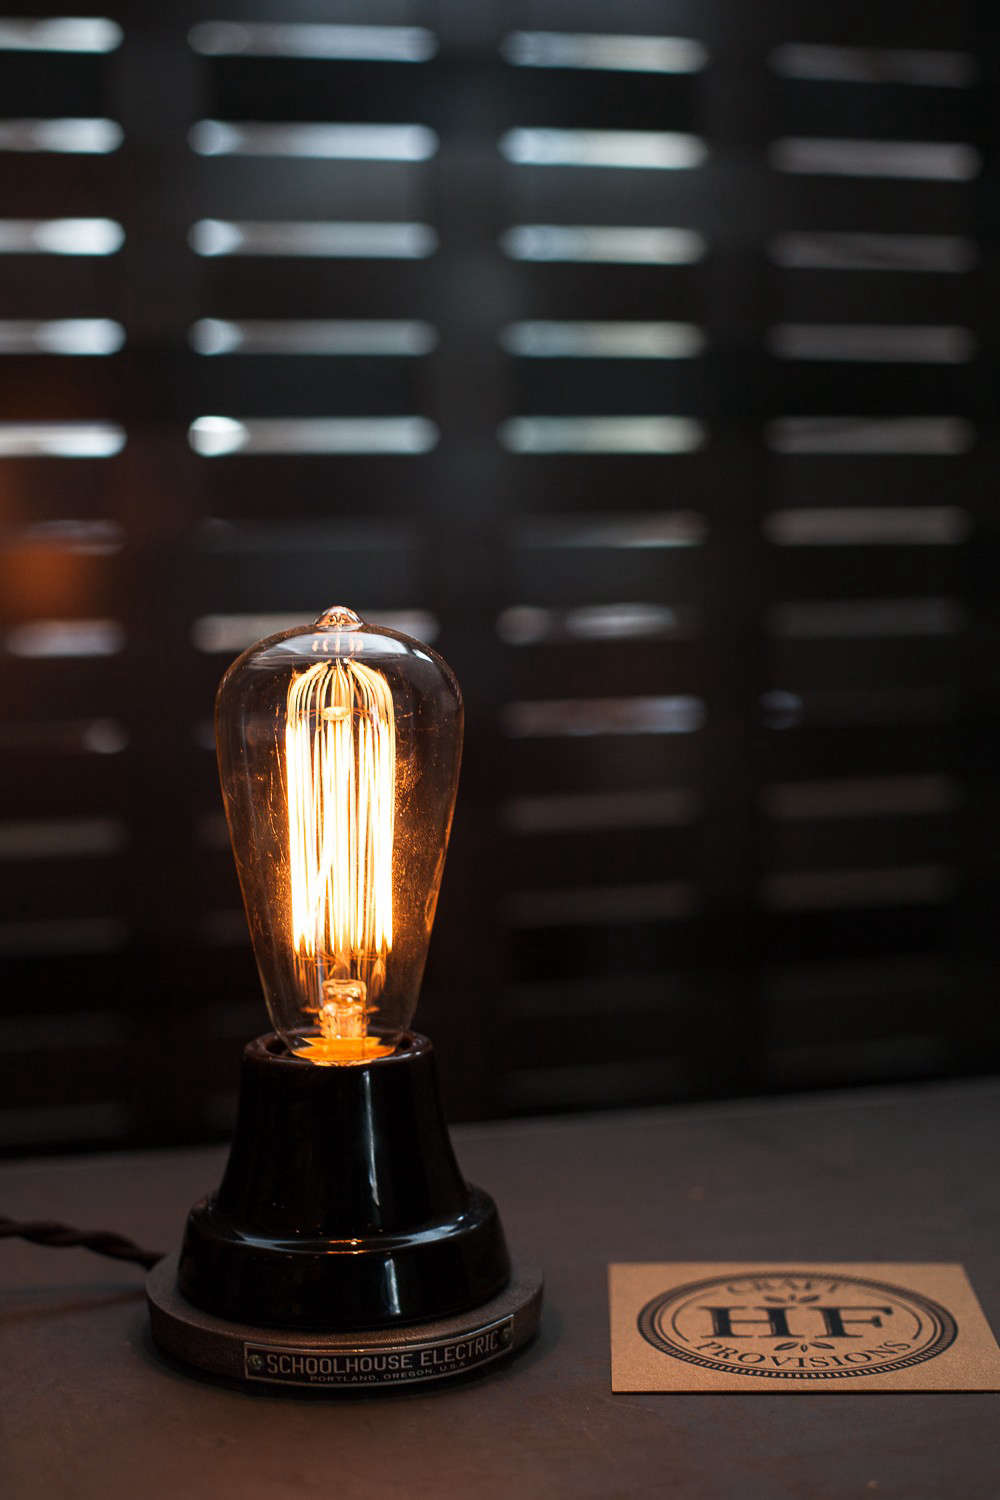 Hock Farm Restaurant with Schoolhouse Electric Lamp